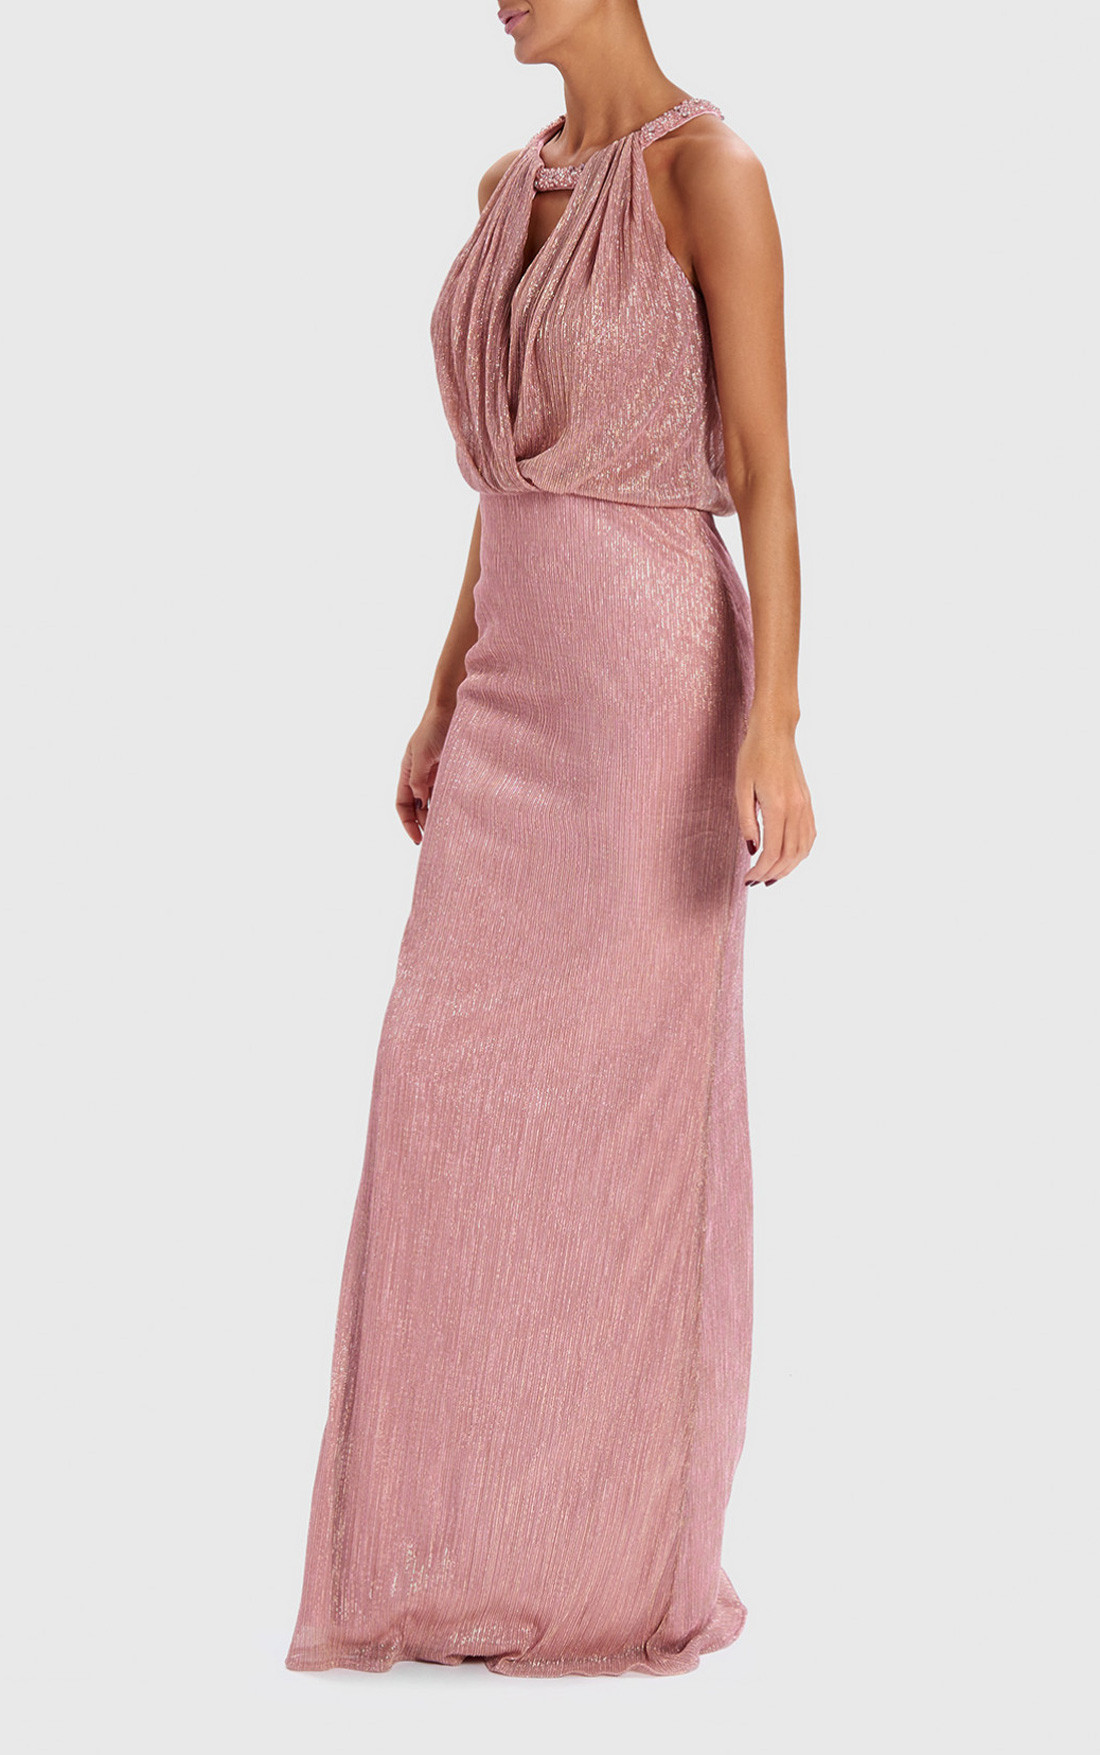 211c1bdbe28a ... Forever Unique - Shimmer Nude Metallic Draped Maxi Dress (AB0922) ...